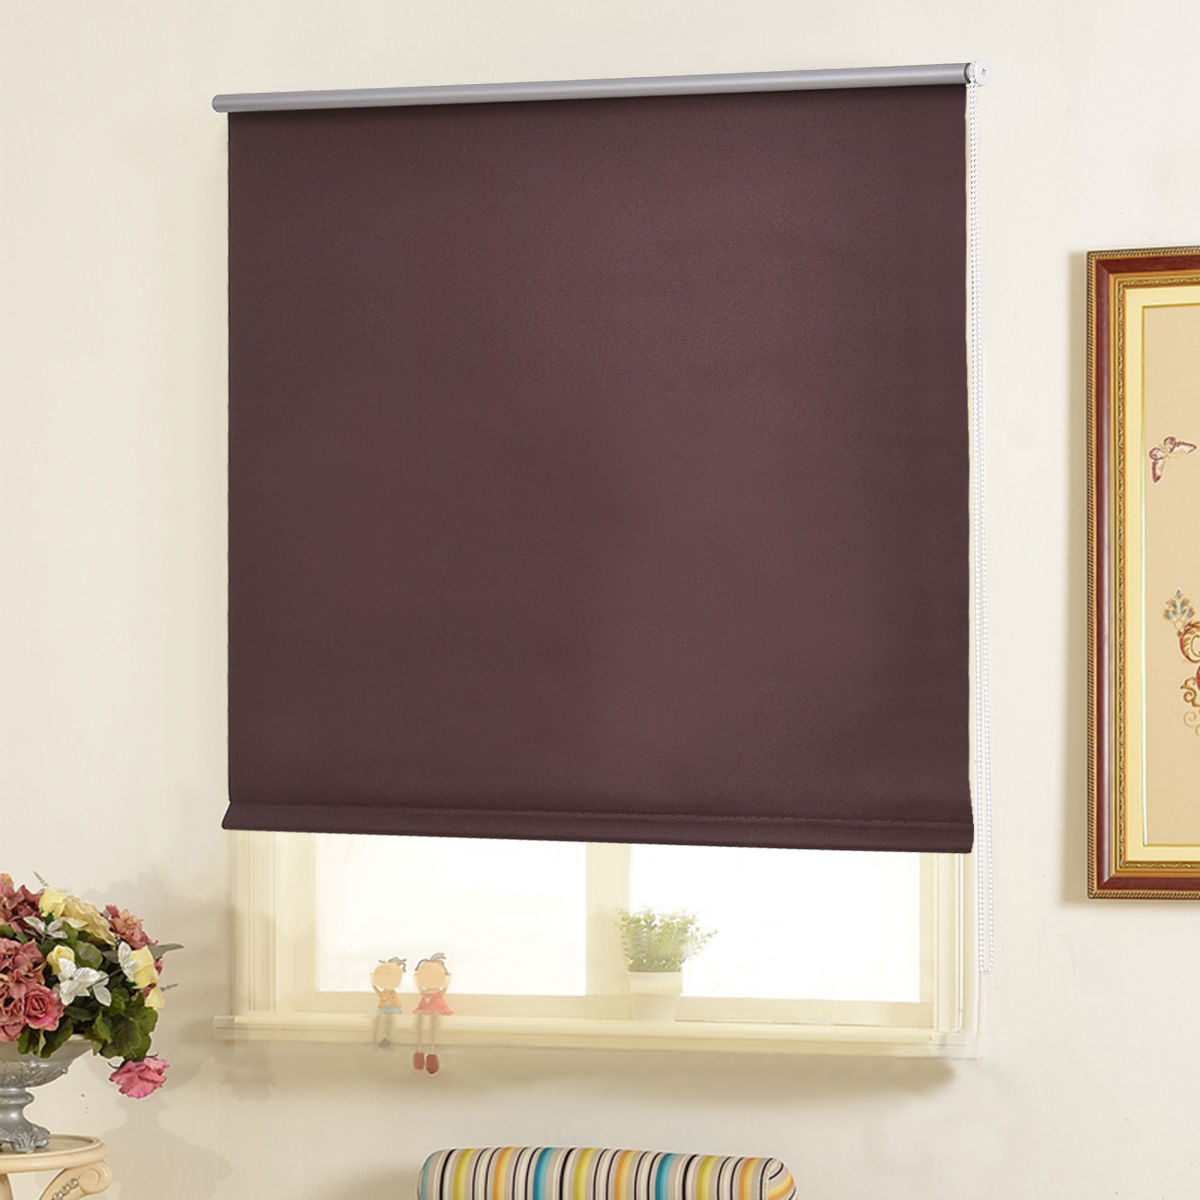 Goplus 35''x60'' Roller Full Blinds Blackout Sunscreen Sun Shade Curtain Window 4 Color